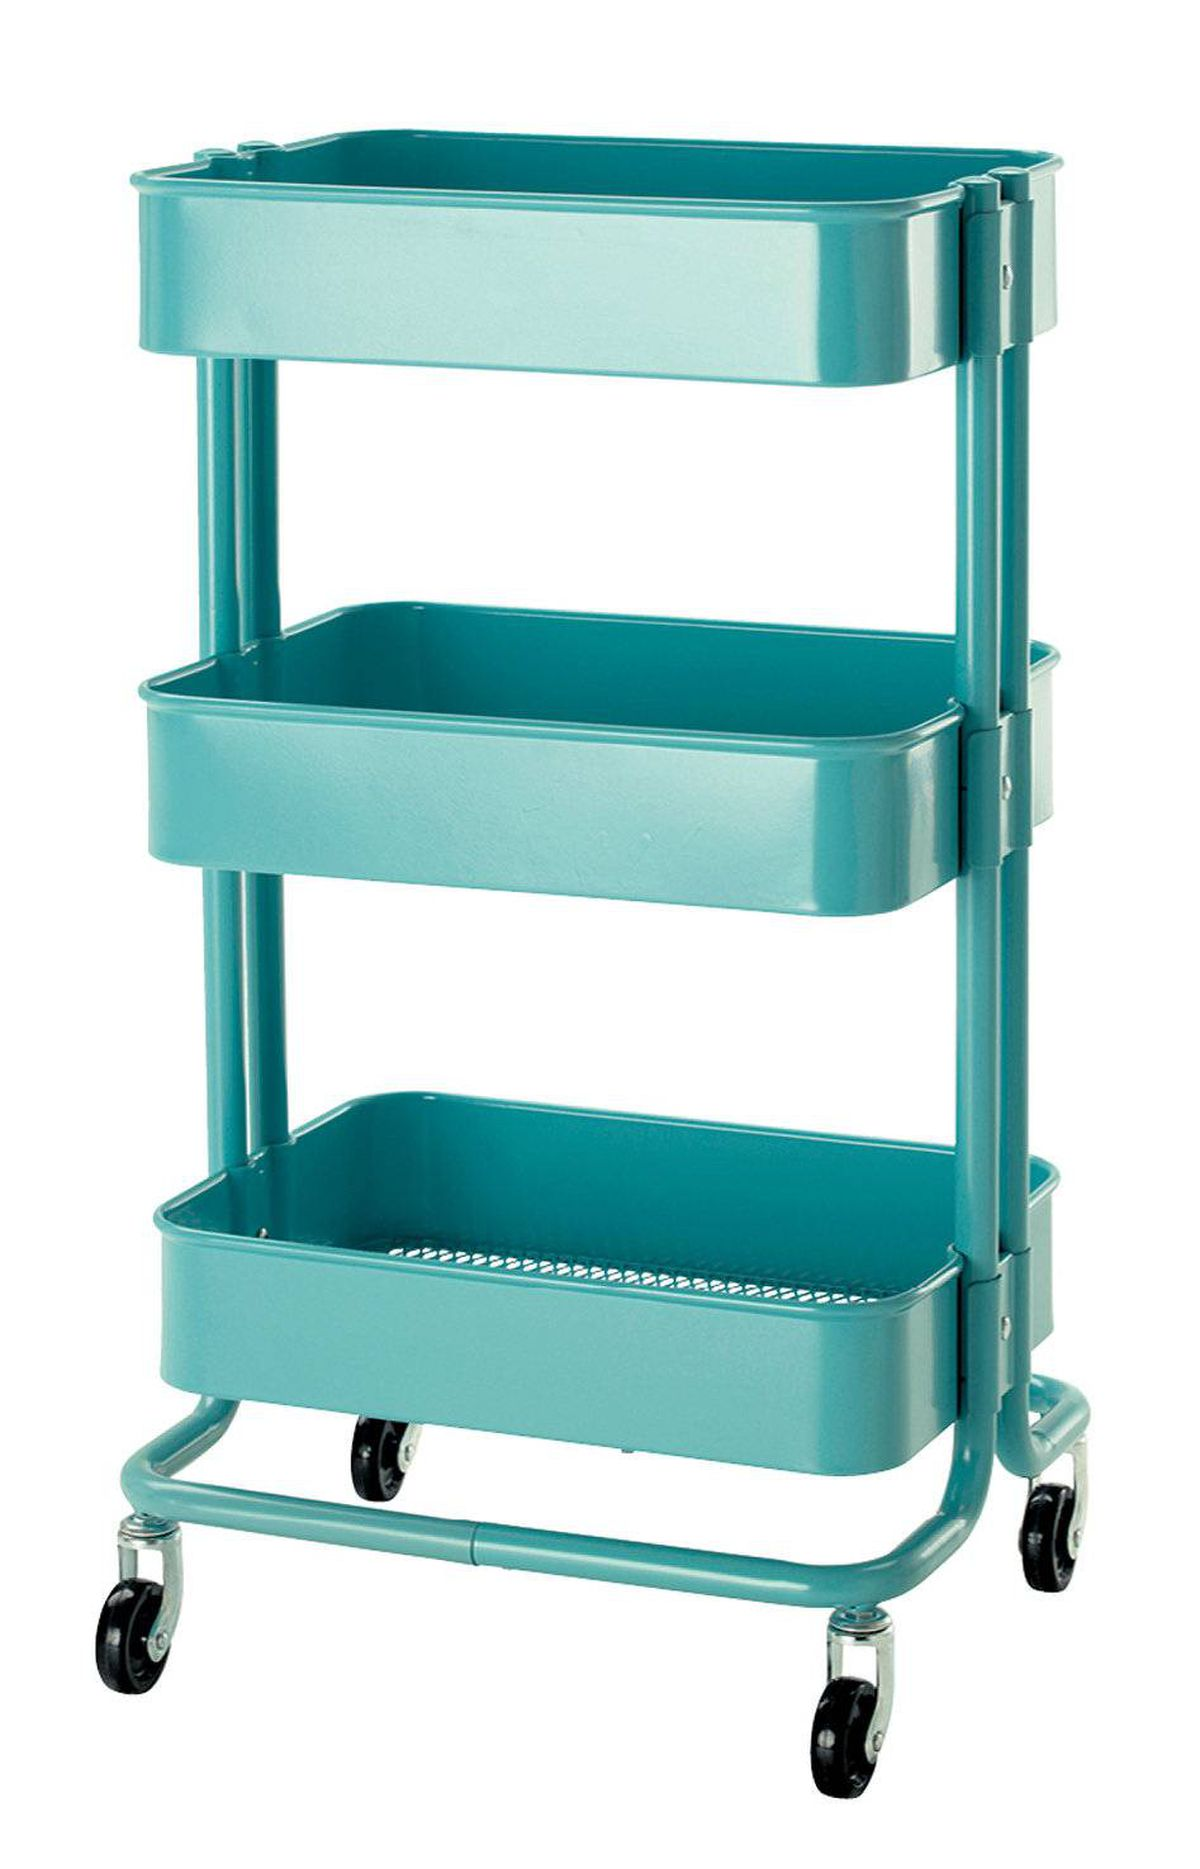 Get organized – stylishly – with a sage-green kitchen cart that could easily do double duty in the bathroom. Raskog trolley, $70 at IKEA (www.ikea.ca).